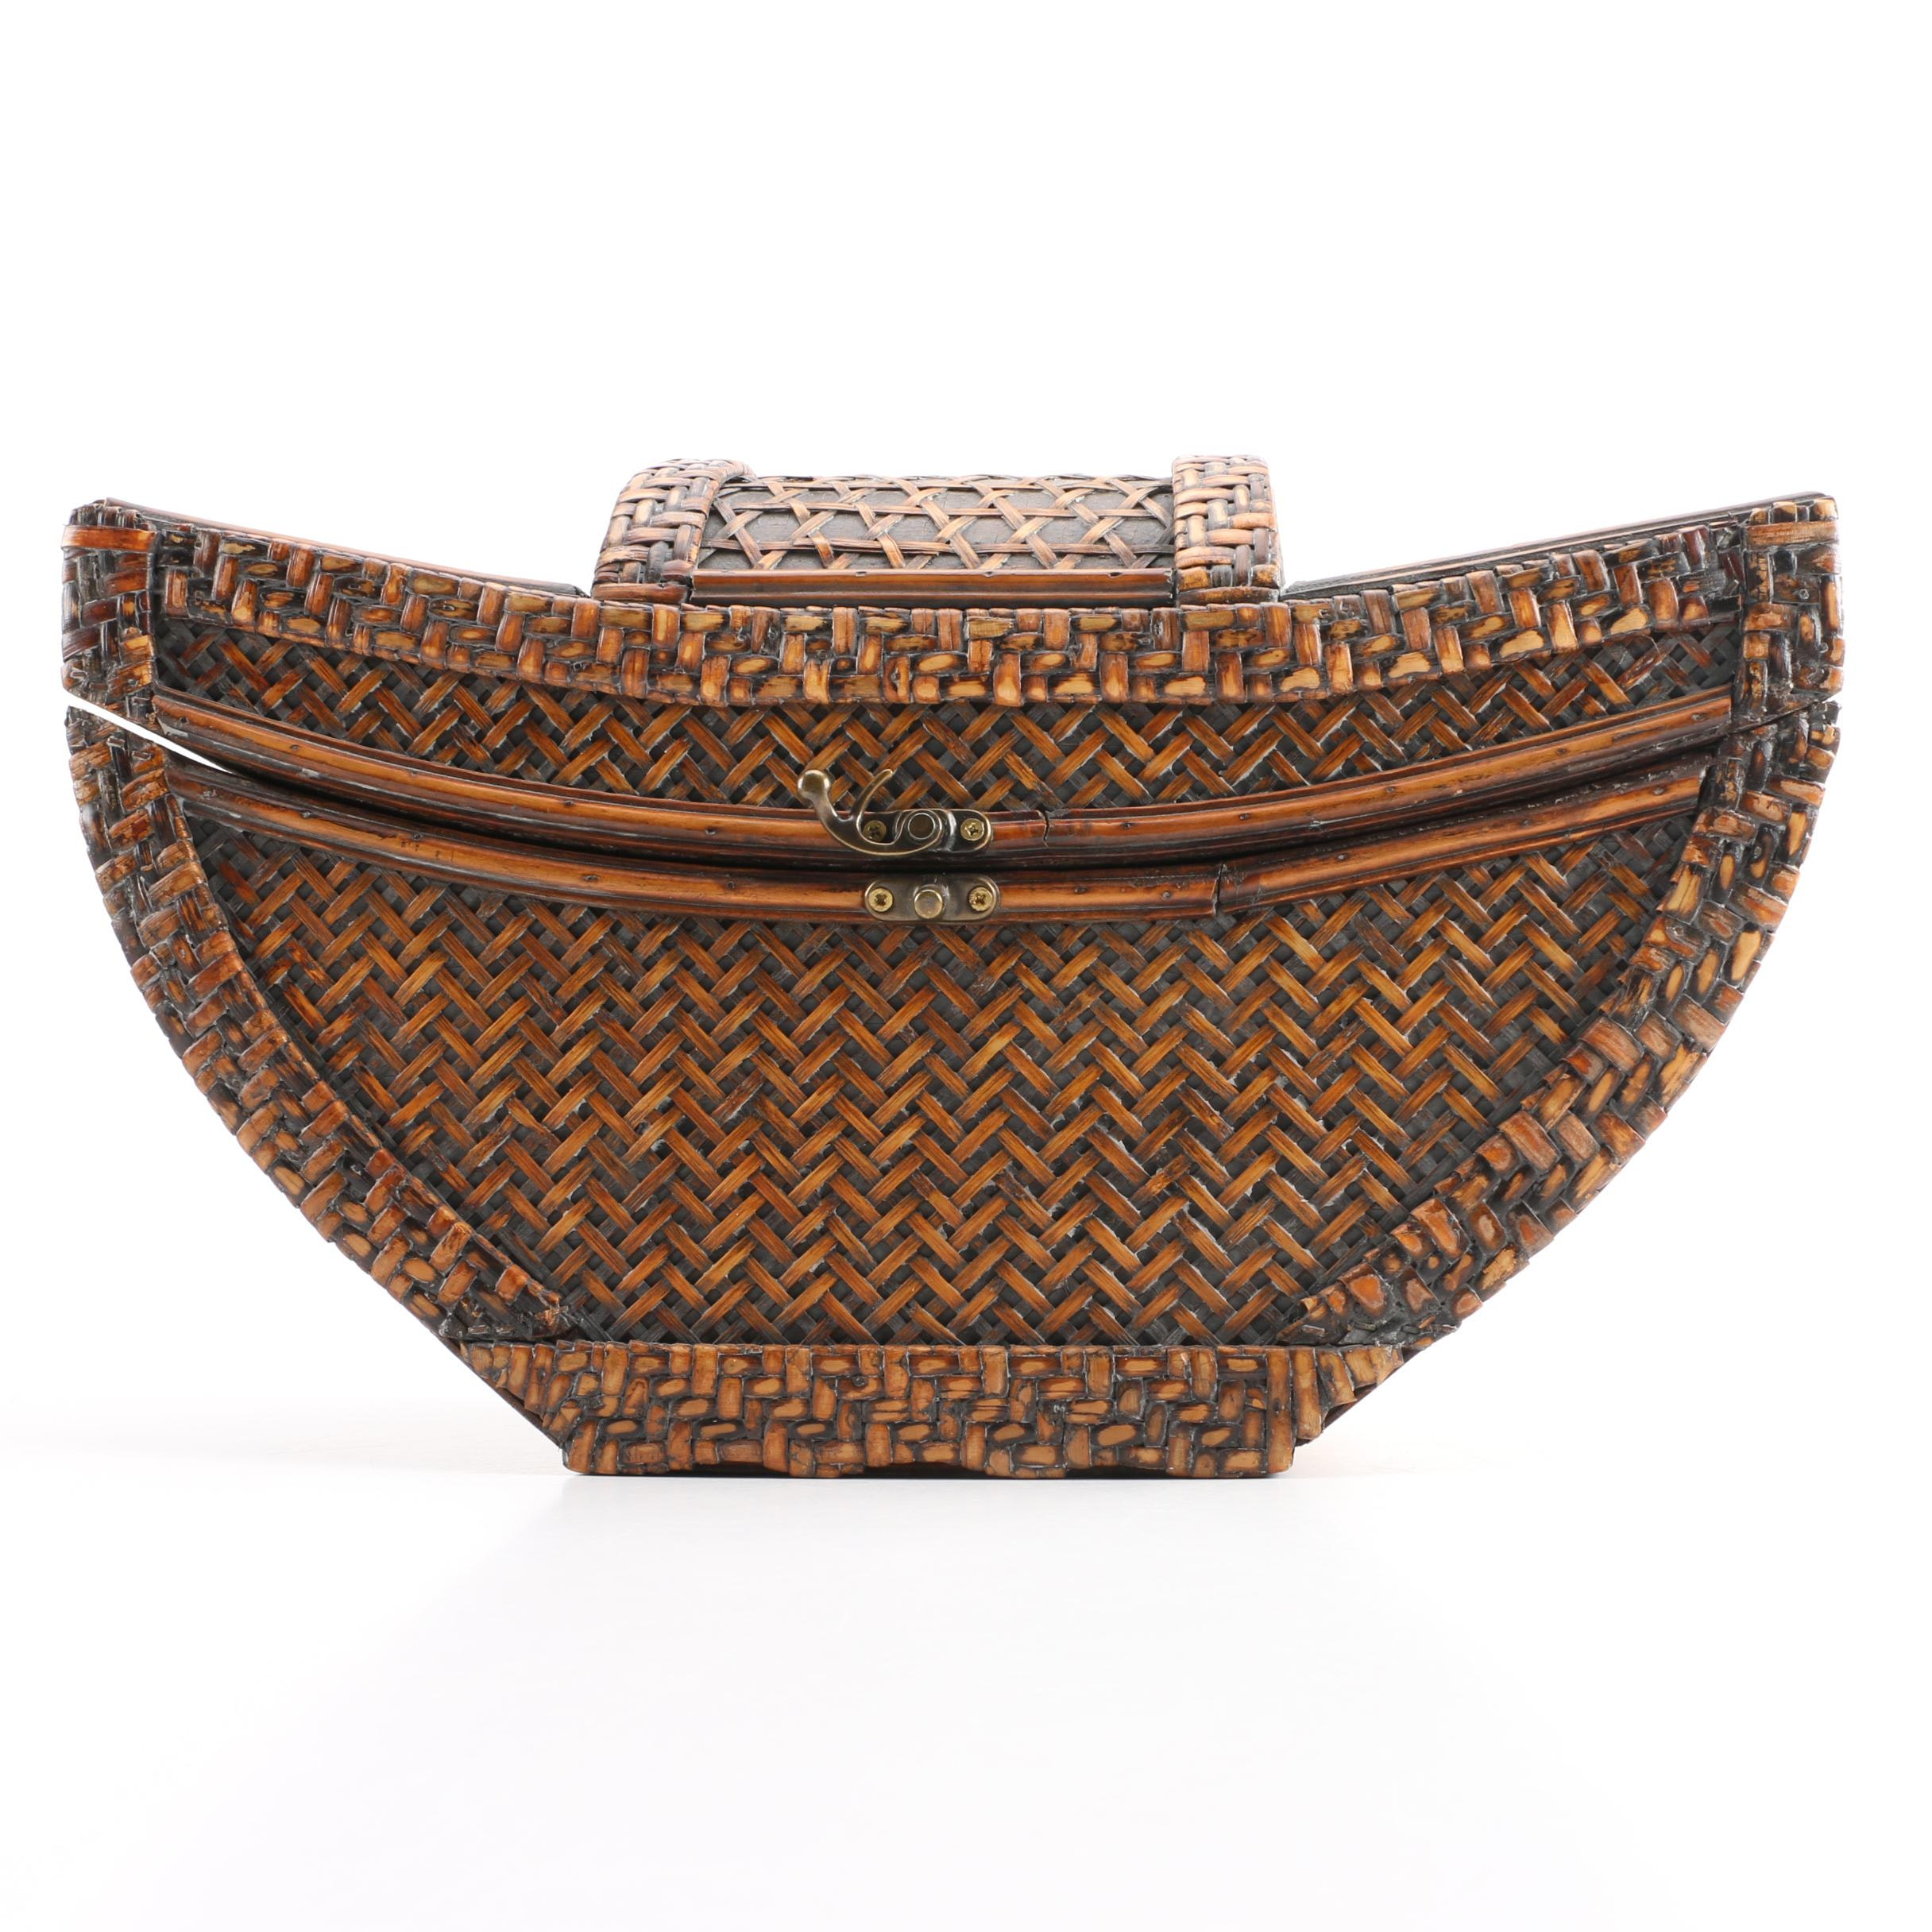 Chinese Made Lidded Woven Basket